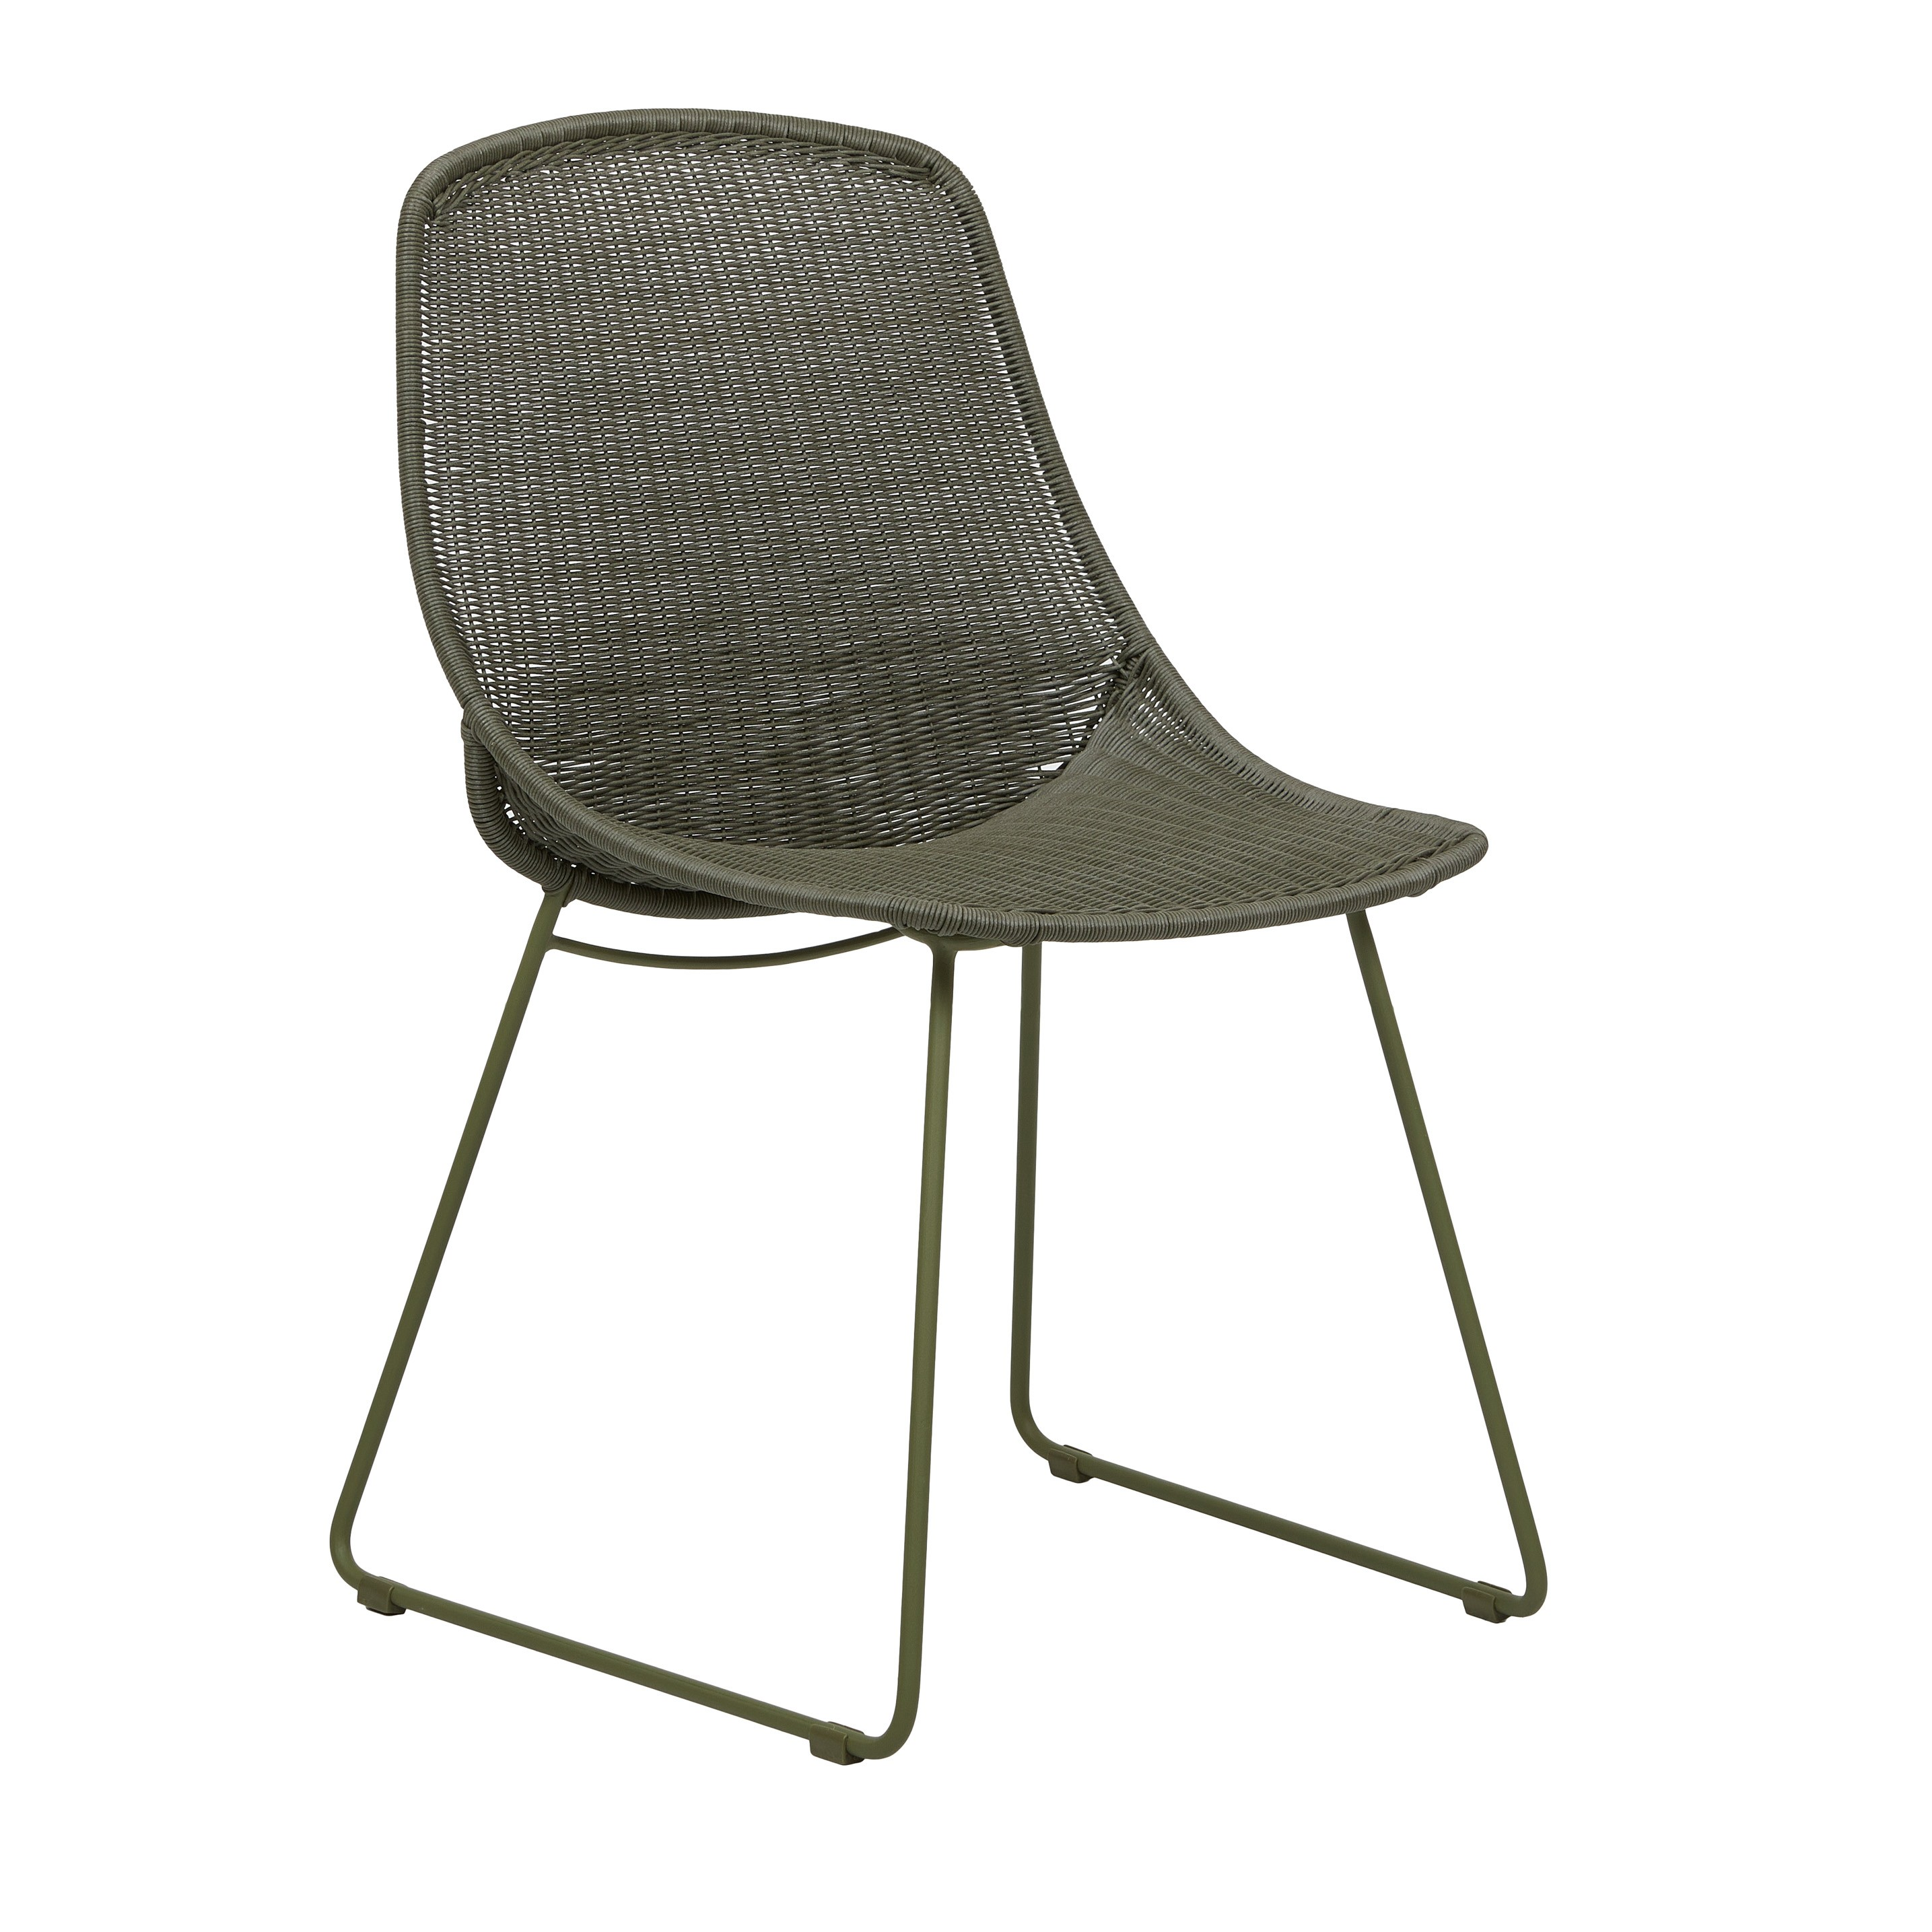 Furniture Hero-Images Dining-Chairs-Benches-and-Stools granada-scoop-closed-weave-02